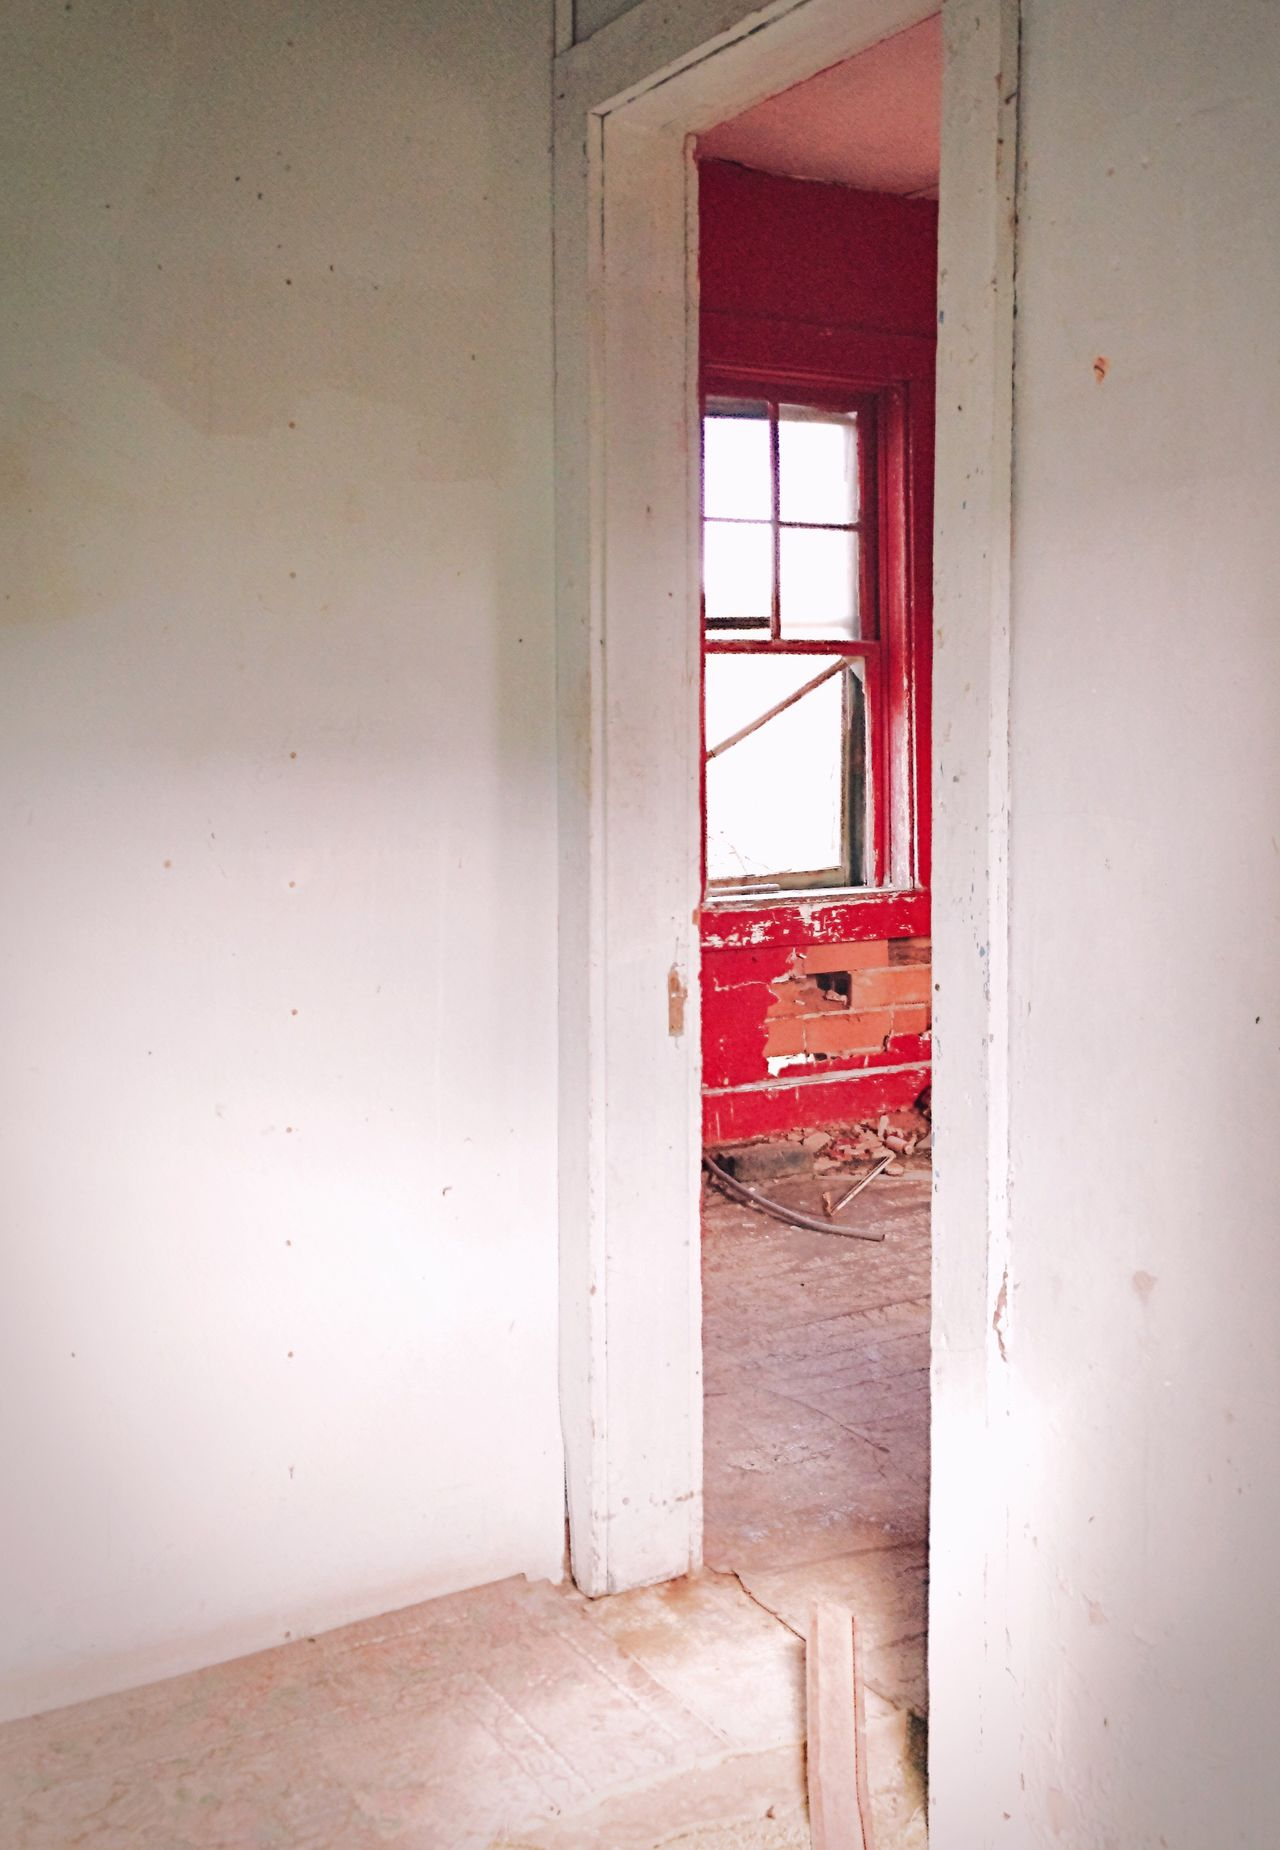 """""""The Red Room"""" Shot through a broken door into the interior of an abandoned house in the ghost town of Ancho, New Mexico. Ancho, was a former railroad and ranching community. The settlement was established at the turn of the 20th century when families began to settle the fertile valley, followed by a number of homesteaders who became the area's first sheep and cattle ranchers. Miners also roamed the area of gypsum hills in search precious metals. Window Abandoned Indoors  Damaged No People Architecture Ghost Town Abandoned Buildings Abandoned Places New Mexico Newmexicophotography Doorway Interior Red Red Color Old Buildings"""